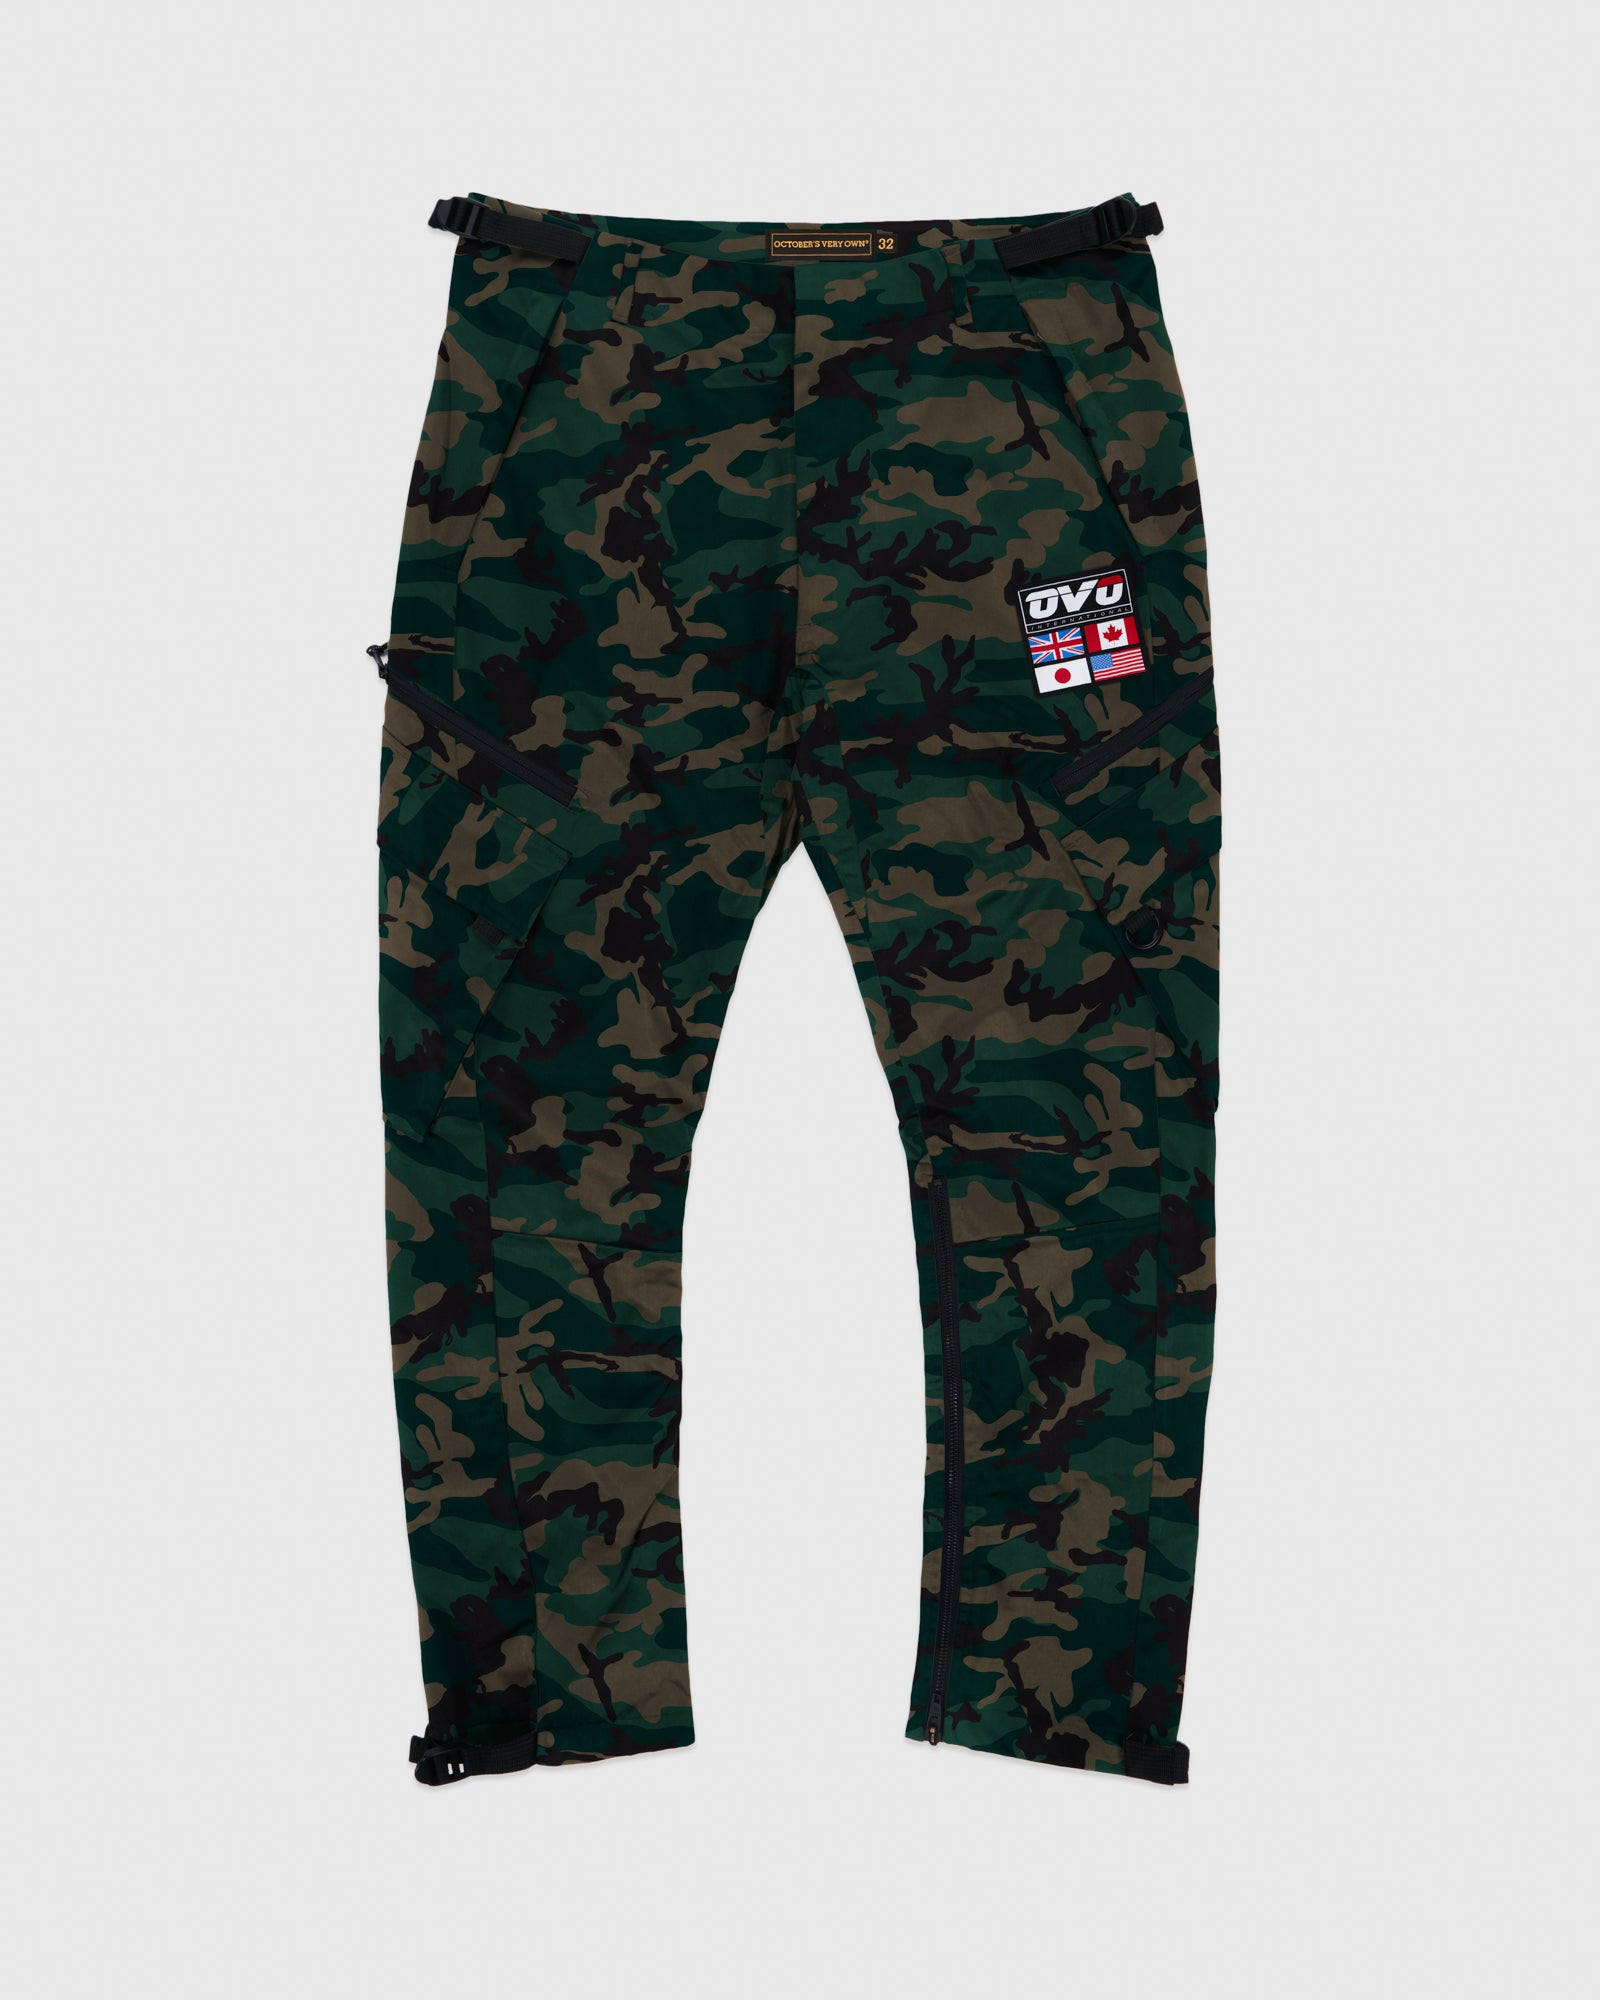 OVO INTERNATIONAL PANT - CAMO GREEN IMAGE #1